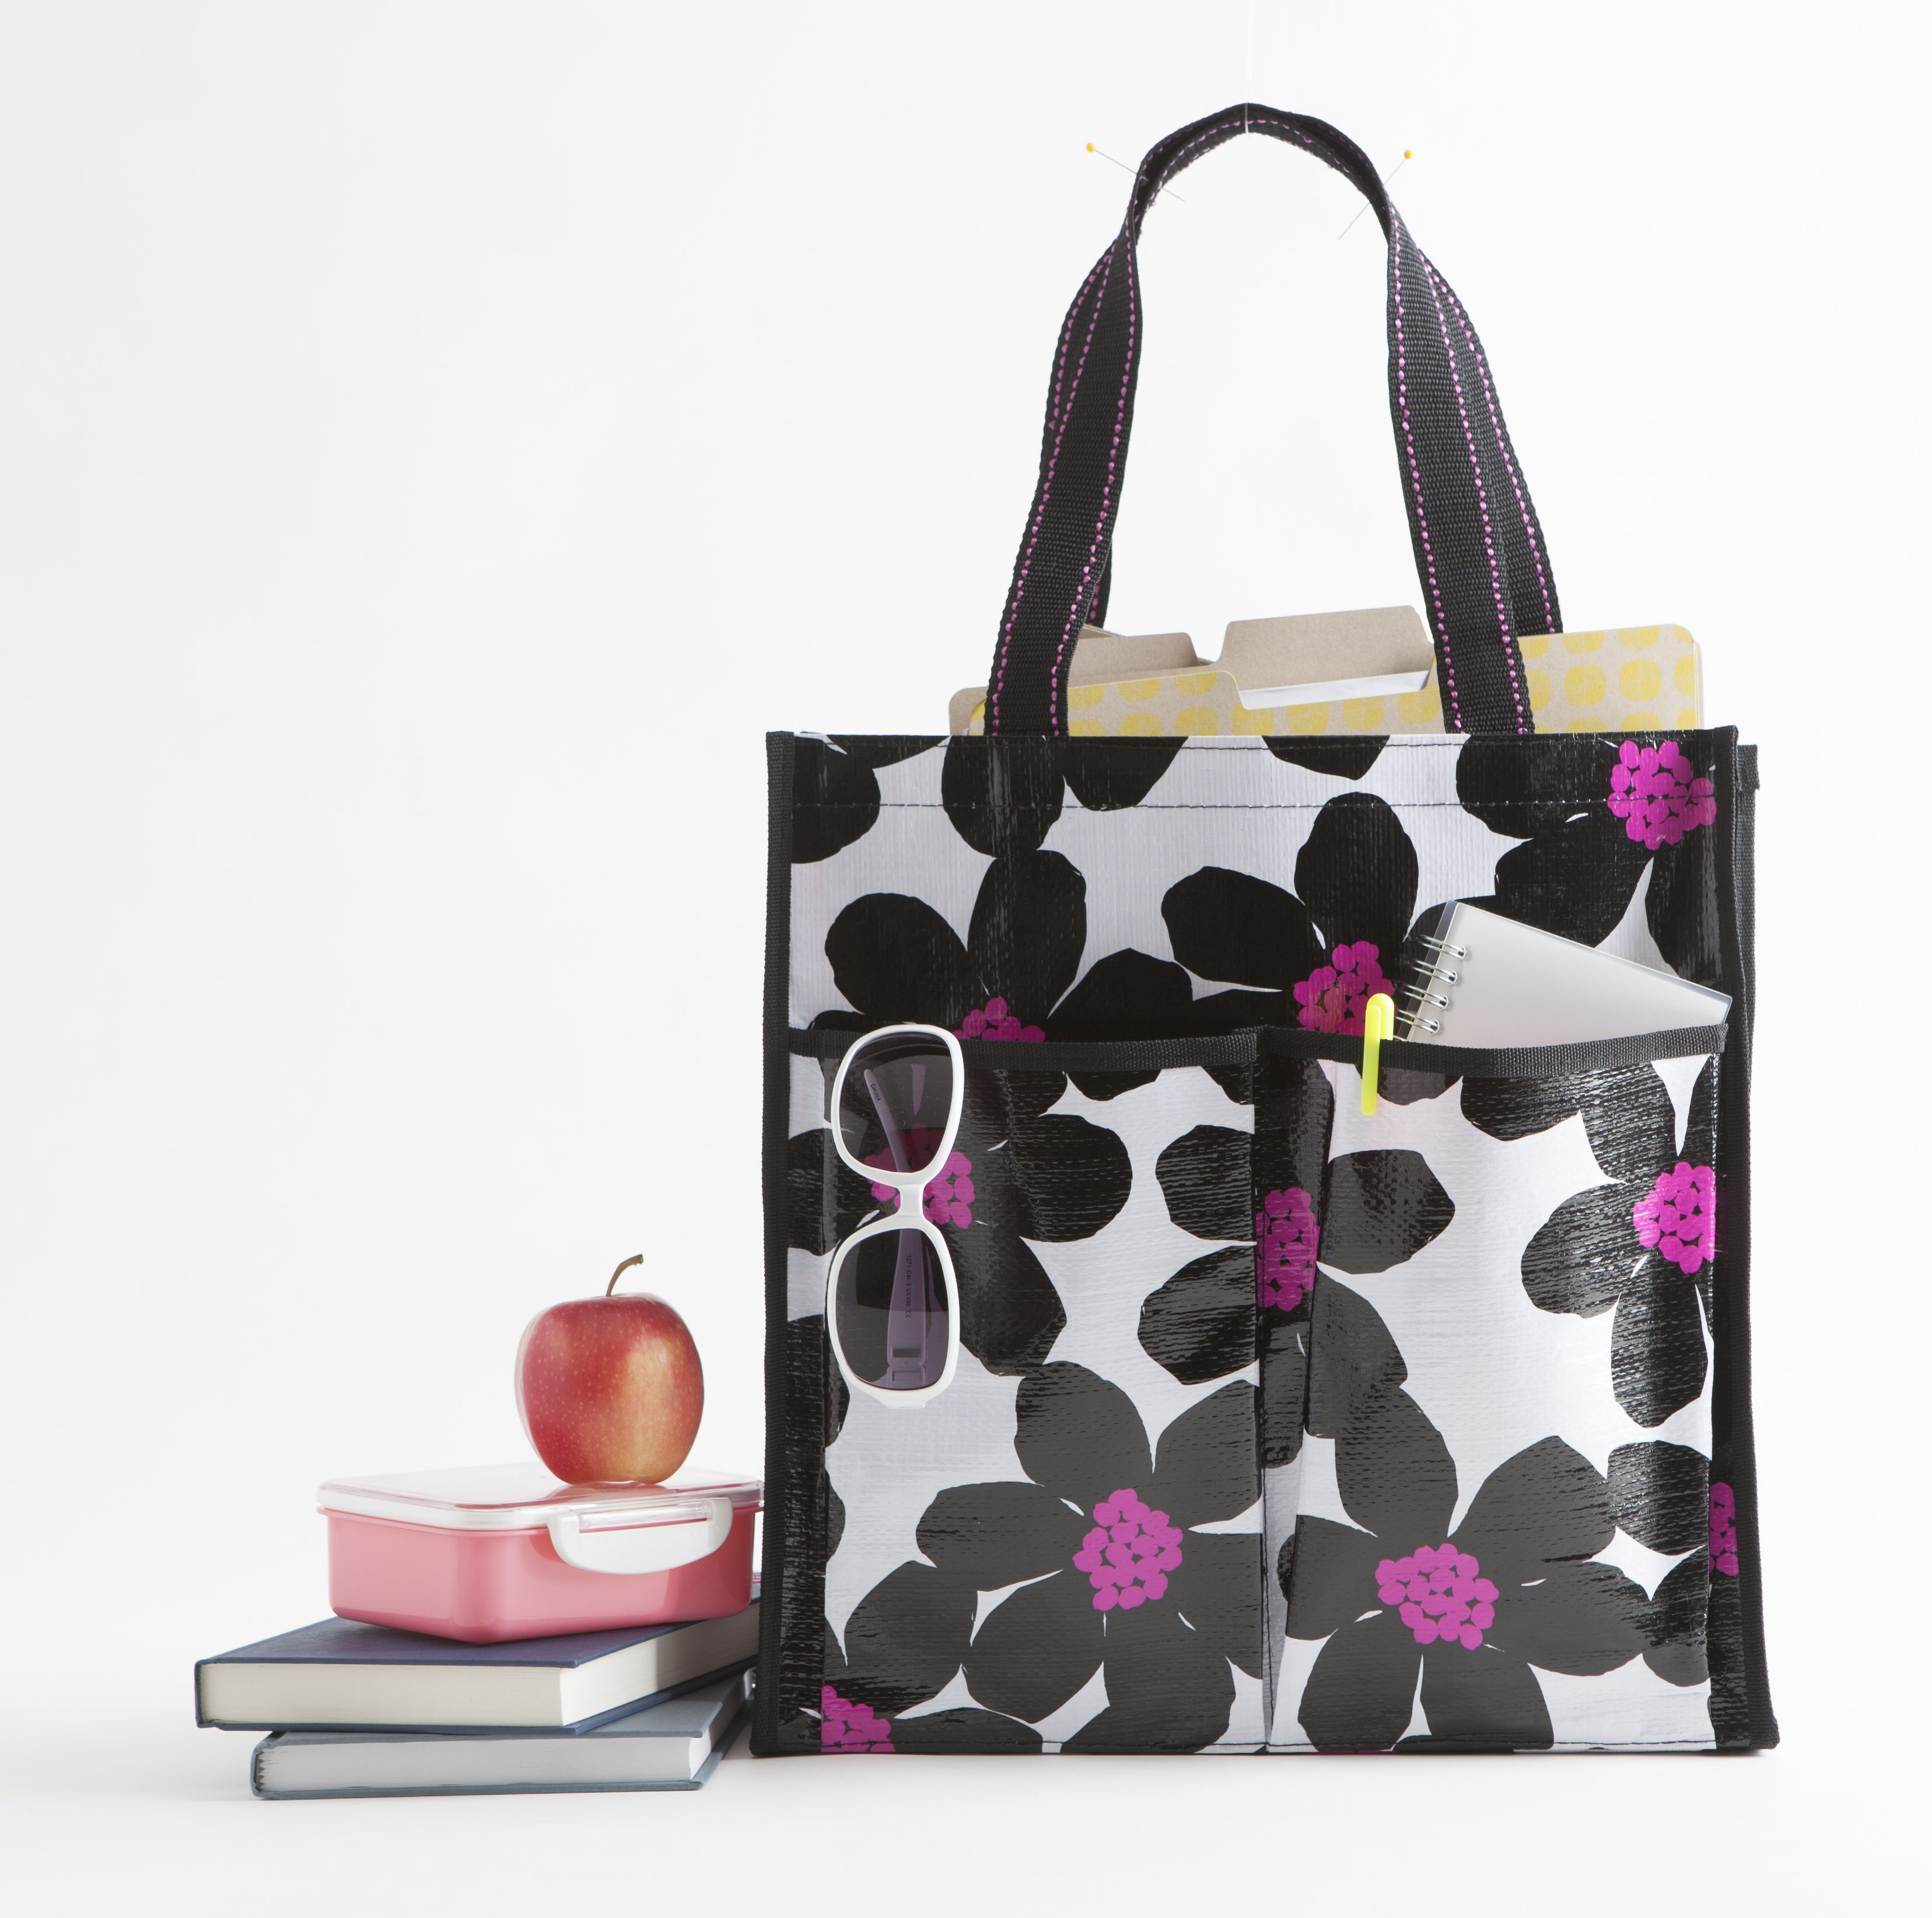 The six pocket tote is part of the Mixed Bag Designs collection of ...